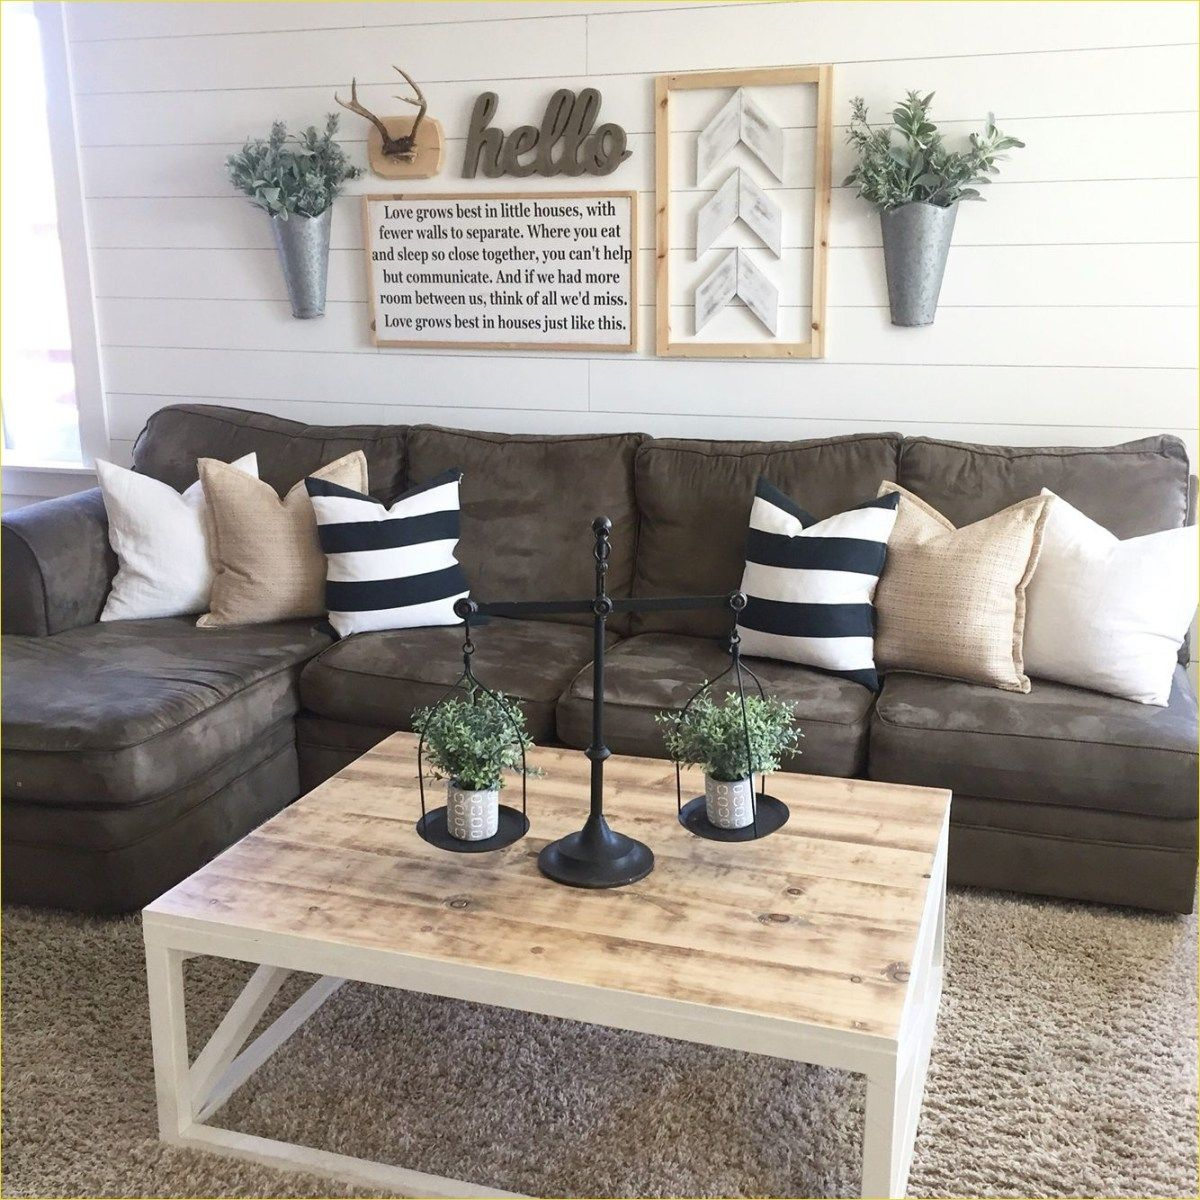 15 Modern Living Room Ideas: Modern Farmhouse Living Room With Leather Sofa 15